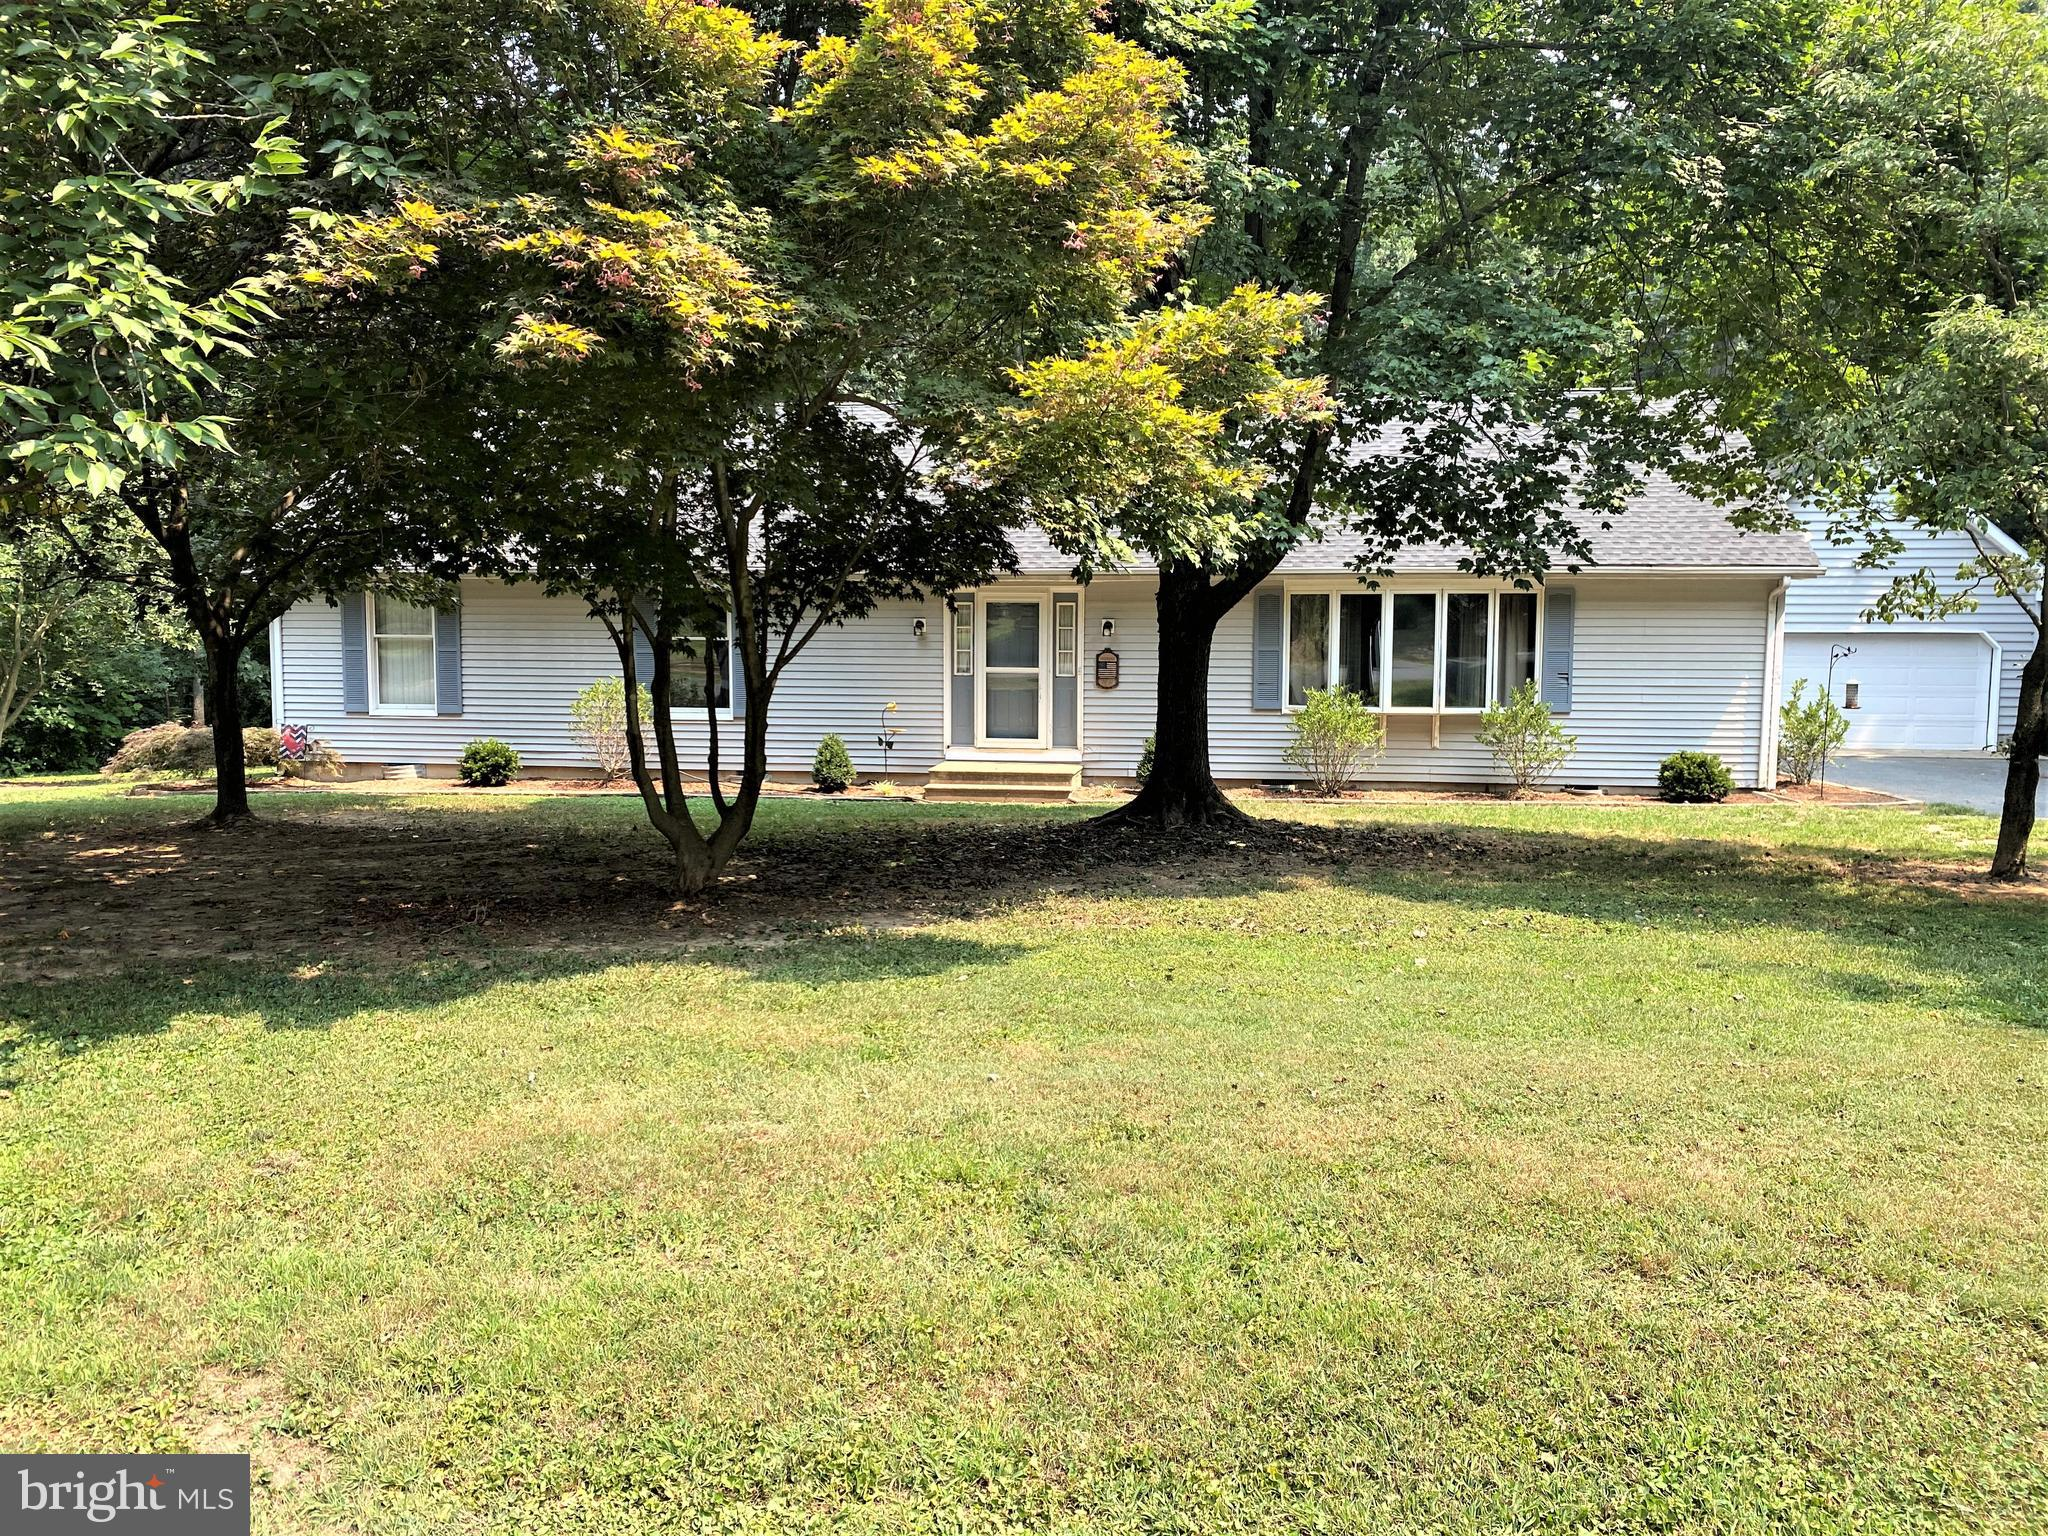 This 3 bedroom 2 bath rancher with a spacious yard has a lot to offer in the water-oriented communit